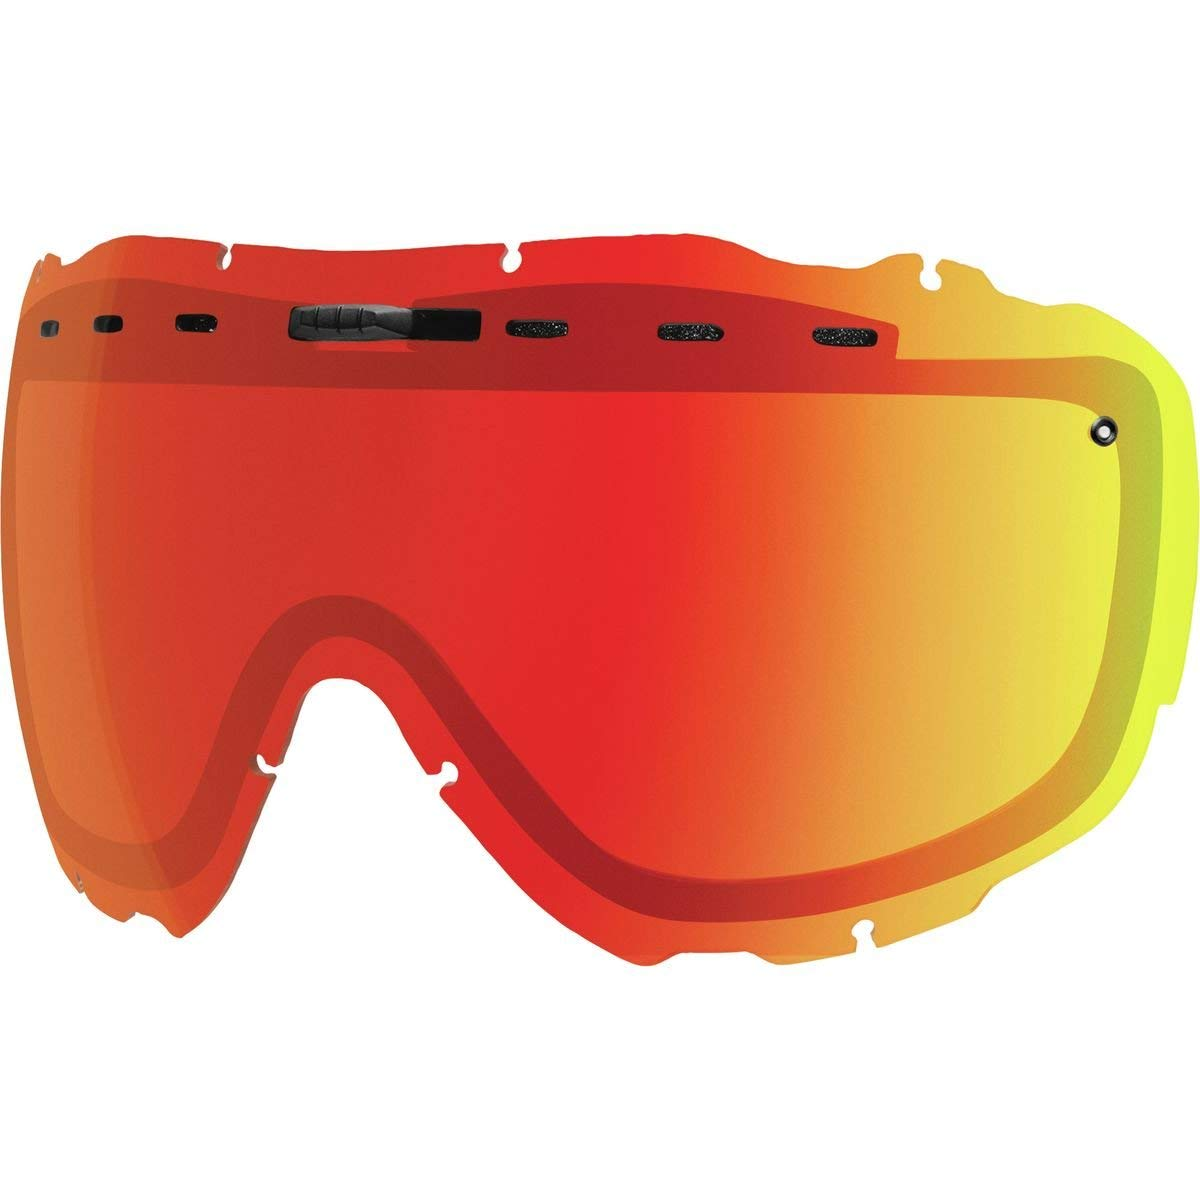 74aa675213fc Get Quotations · Smith Optics Prophecy Turbo Adult Replacement Lense Snow  Goggles Accessories - Chromapop Everyday Red Mirror